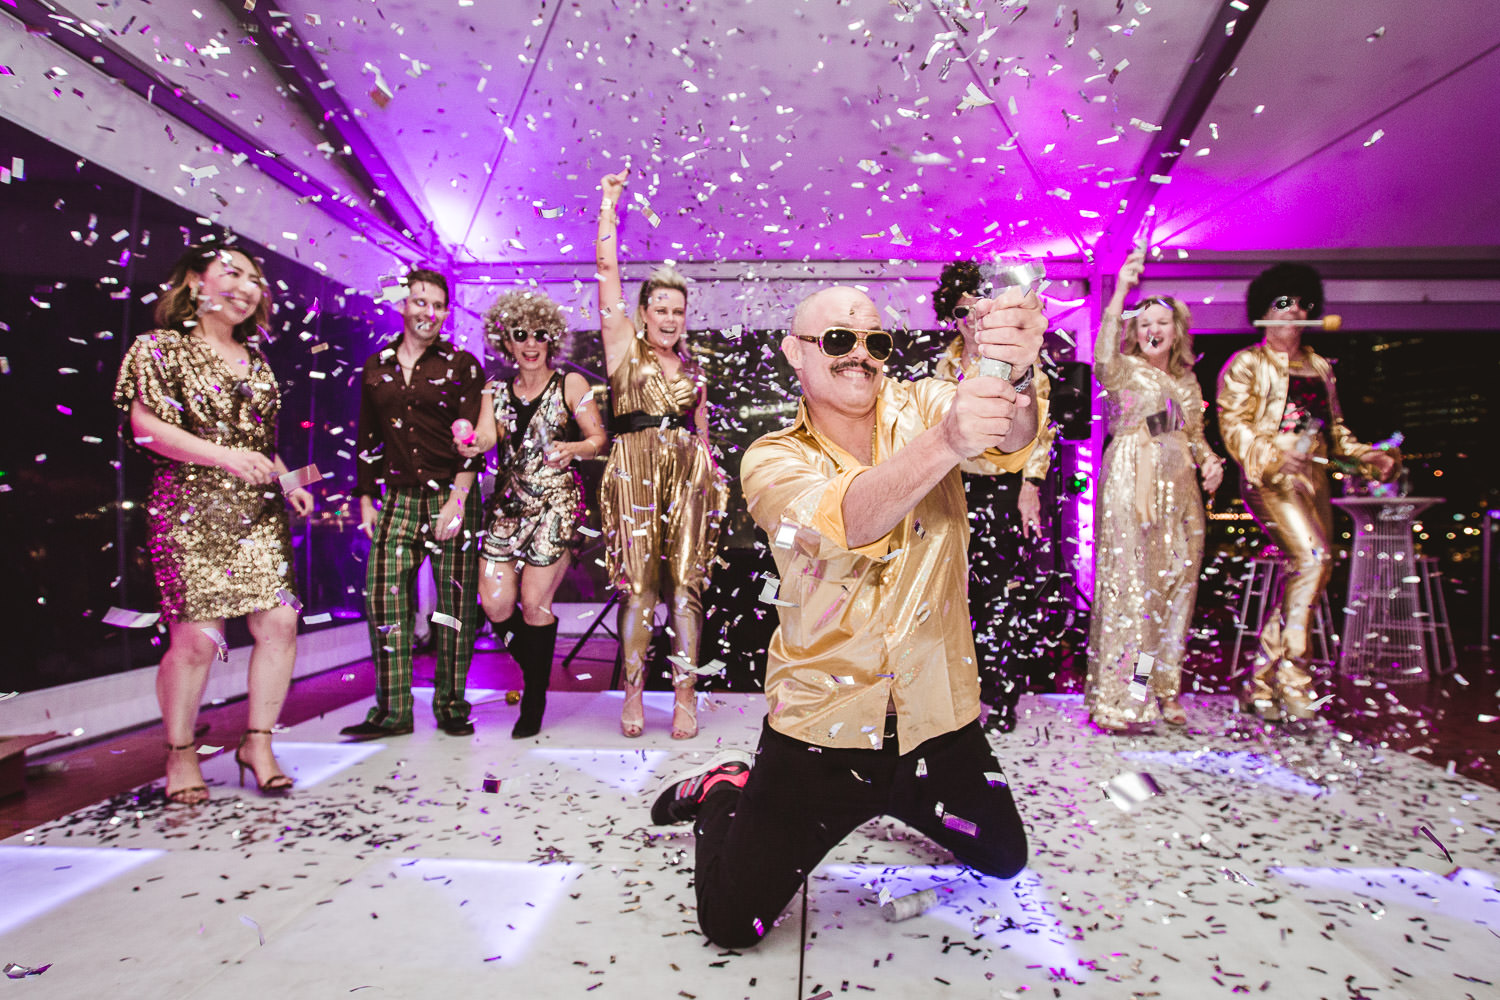 Commercial - Events - A bald man dressed in a gold shirt kneels at the front of a dancefloor, while surrounded by silver confetti and seven other people dressed in gold